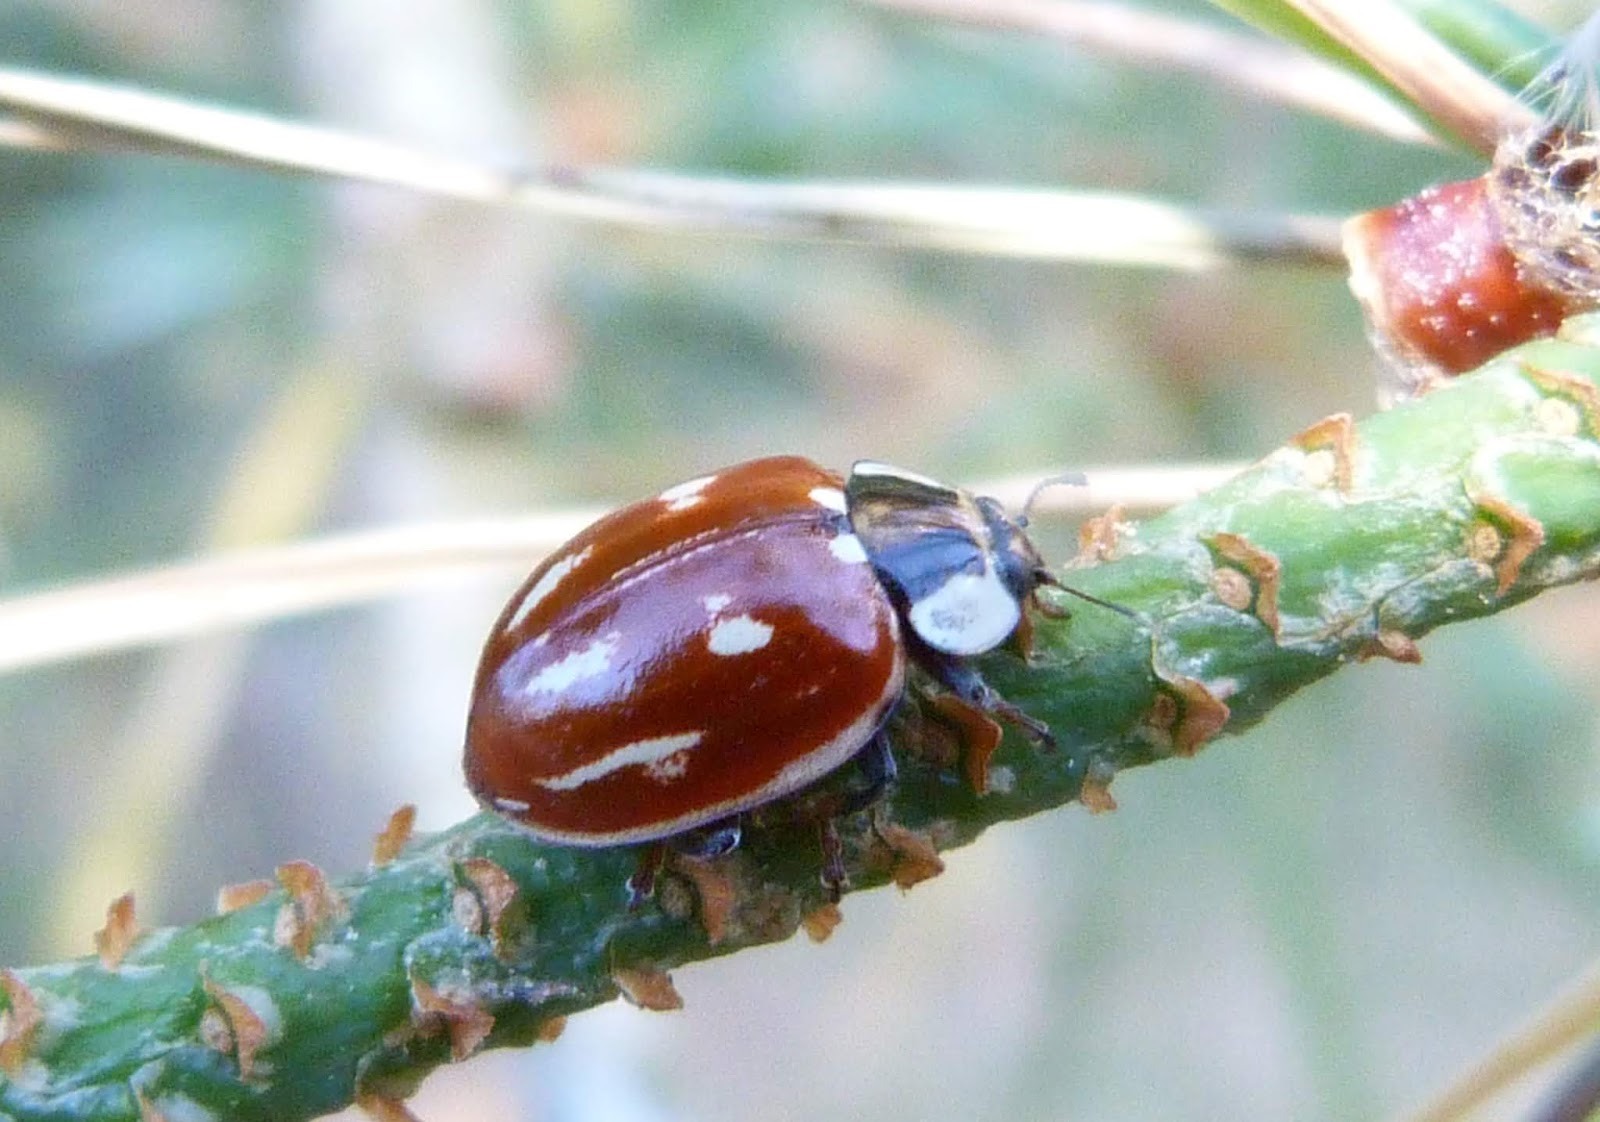 Insects of Scotland: Ladybirds